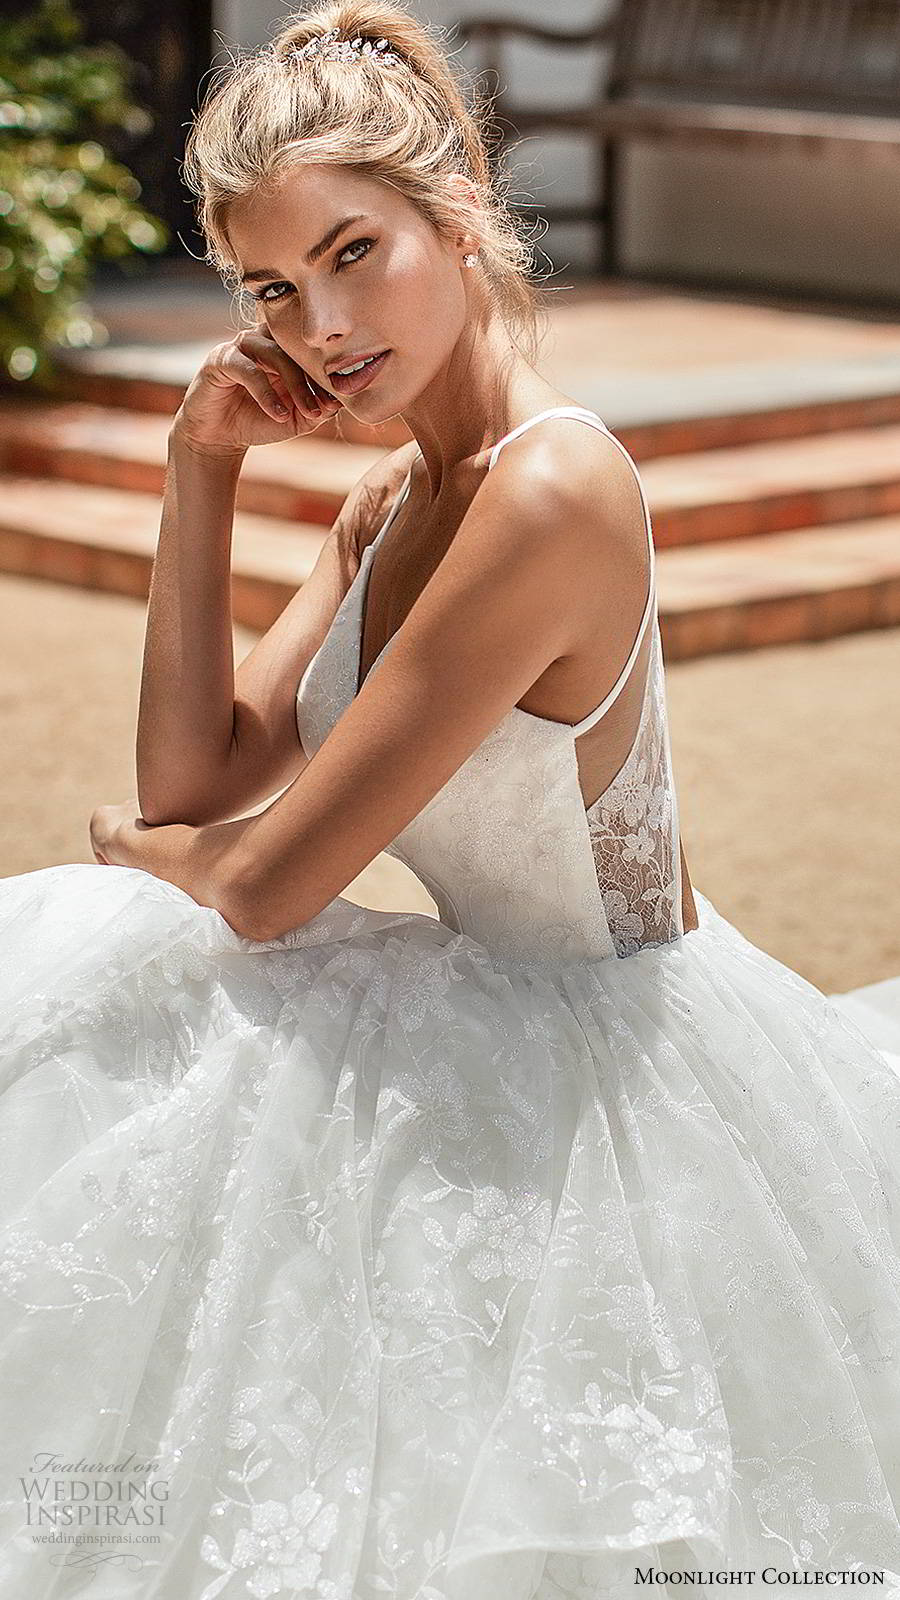 moonlight collection spring 2020 bridal sleeveless thin straps sweetheart neckline tiered skirt fully embellished romantic lace a line ball gown wedding dress cutout back chapel train (7) zsv